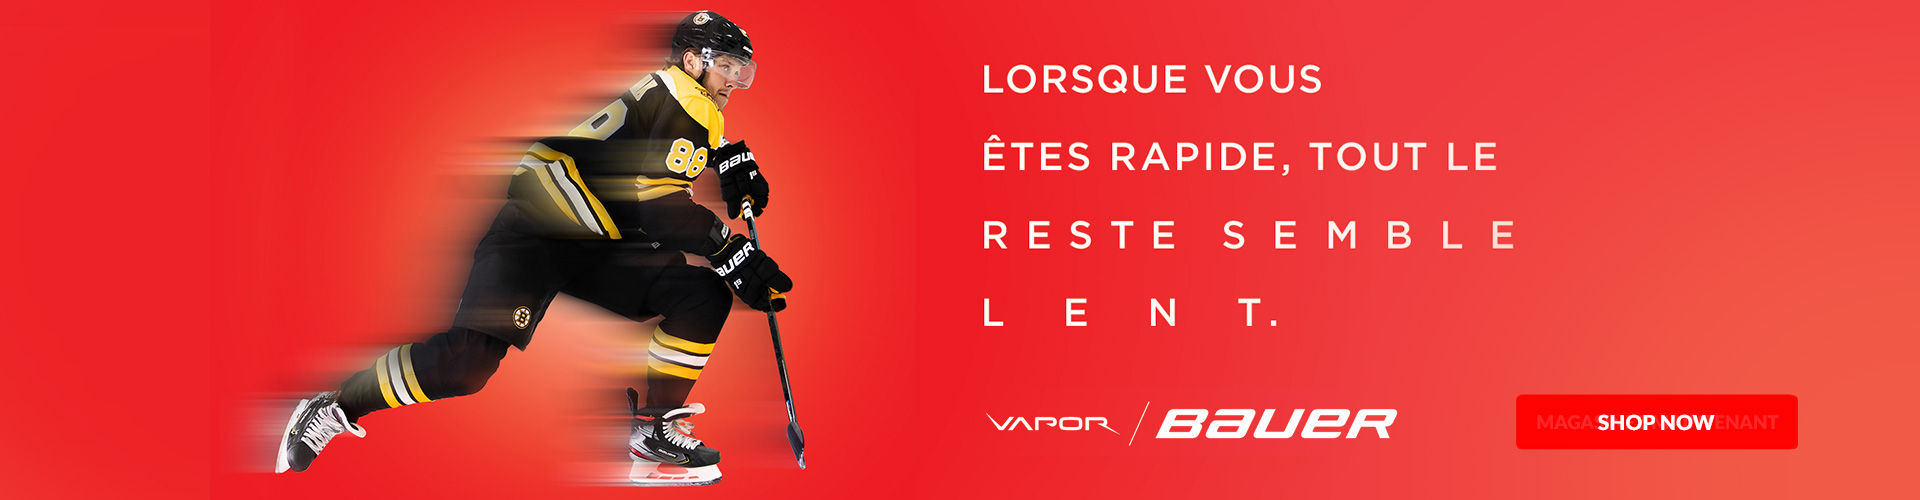 Shop The All-New Bauer Vapor Hockey Skates such as the Vapor 2X Pro, 2X, x2.9, X2.7, x2.5, X:Shift Pro, and X:Velocity For Sale In Store and Online At Your Local Source For Sports Near You.